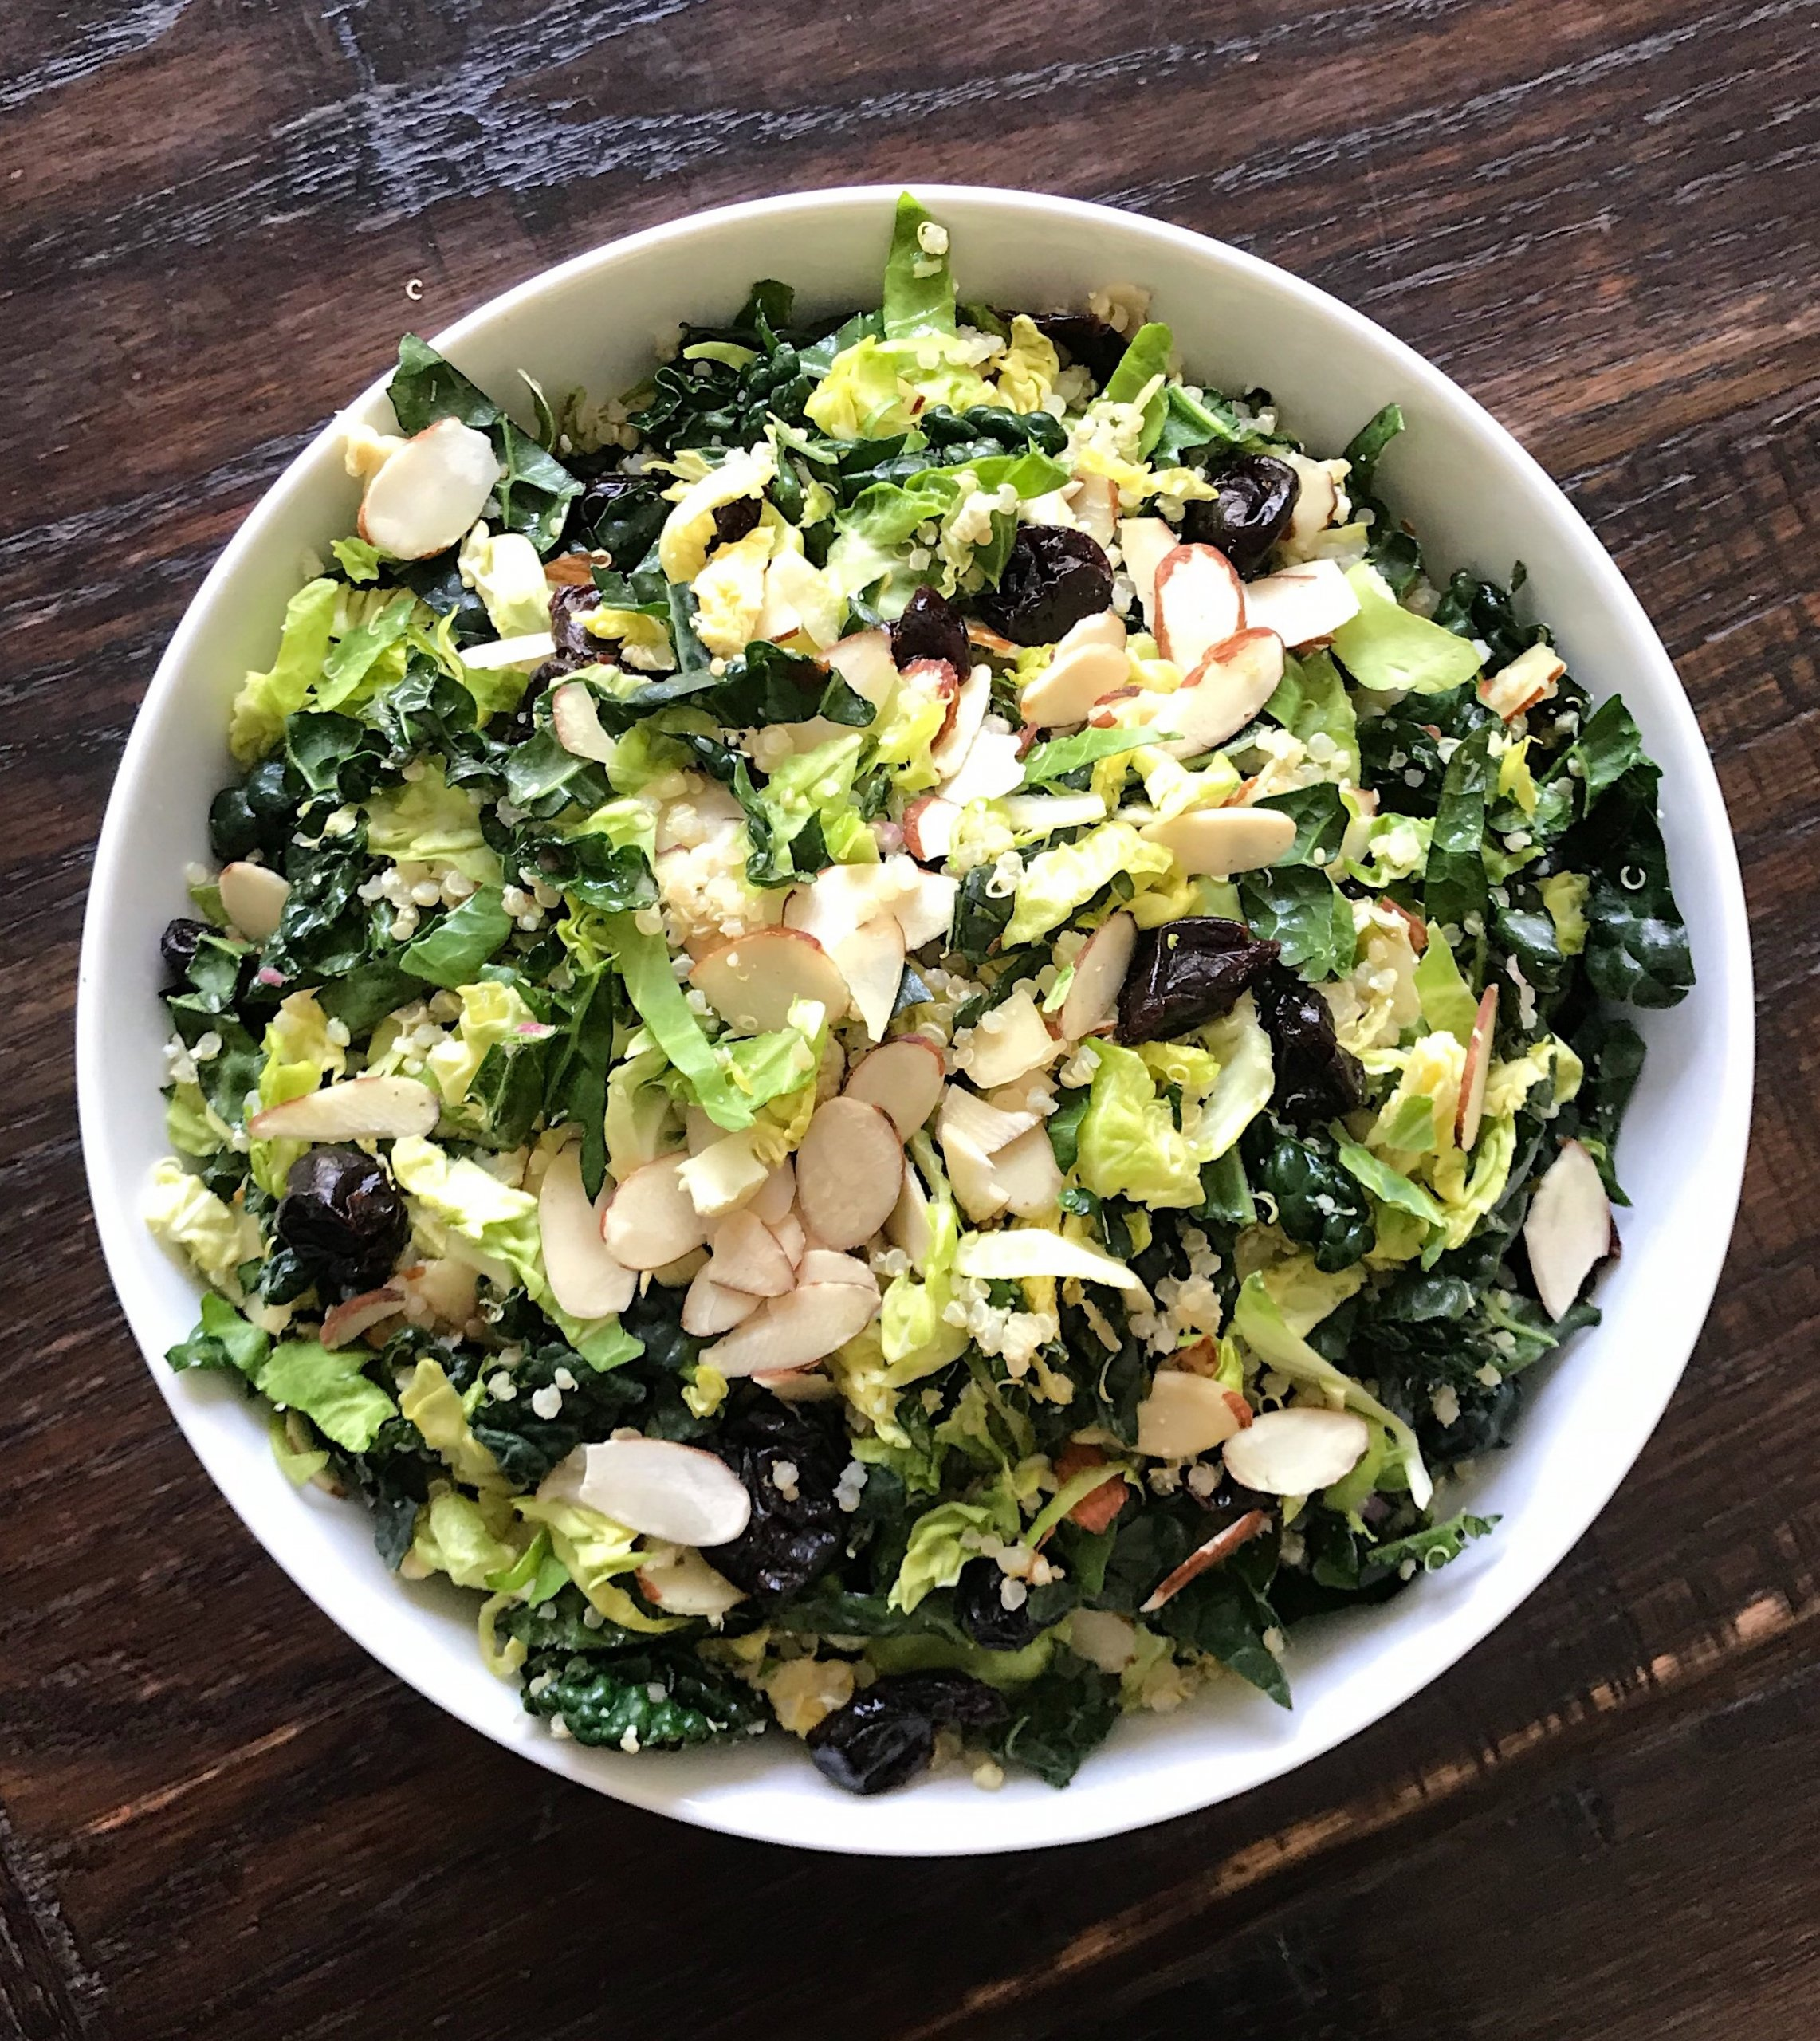 shaved brussels sprouts and Kale quinoa salad lemony dijon vinaigrette gluten free #glutenfreerecipes www.healthygffamily.com